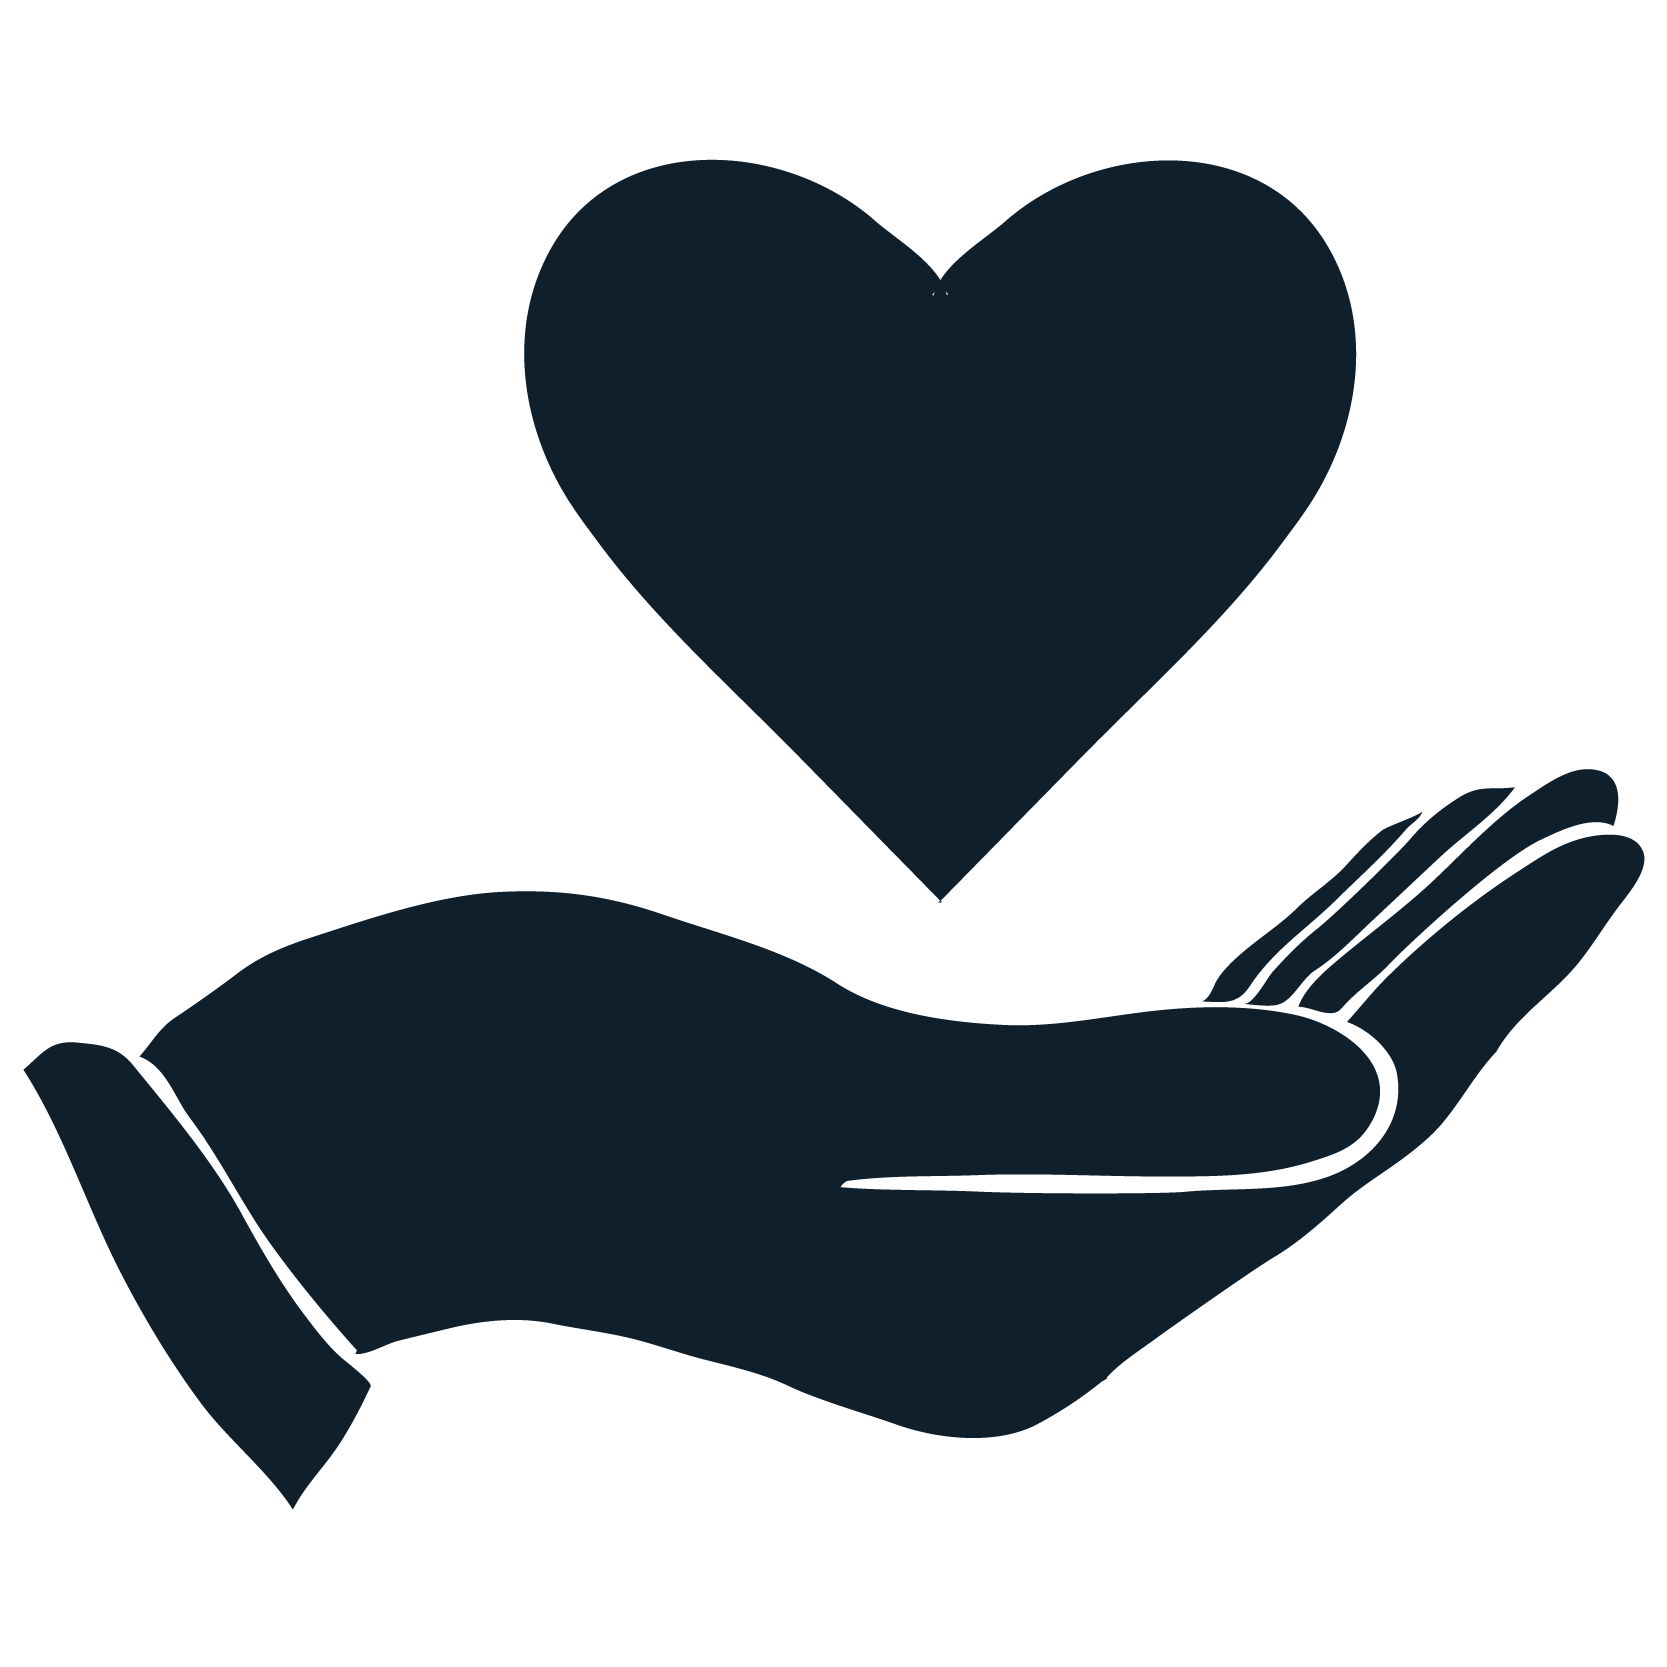 Mount st helens institute. Donation clipart hand heart